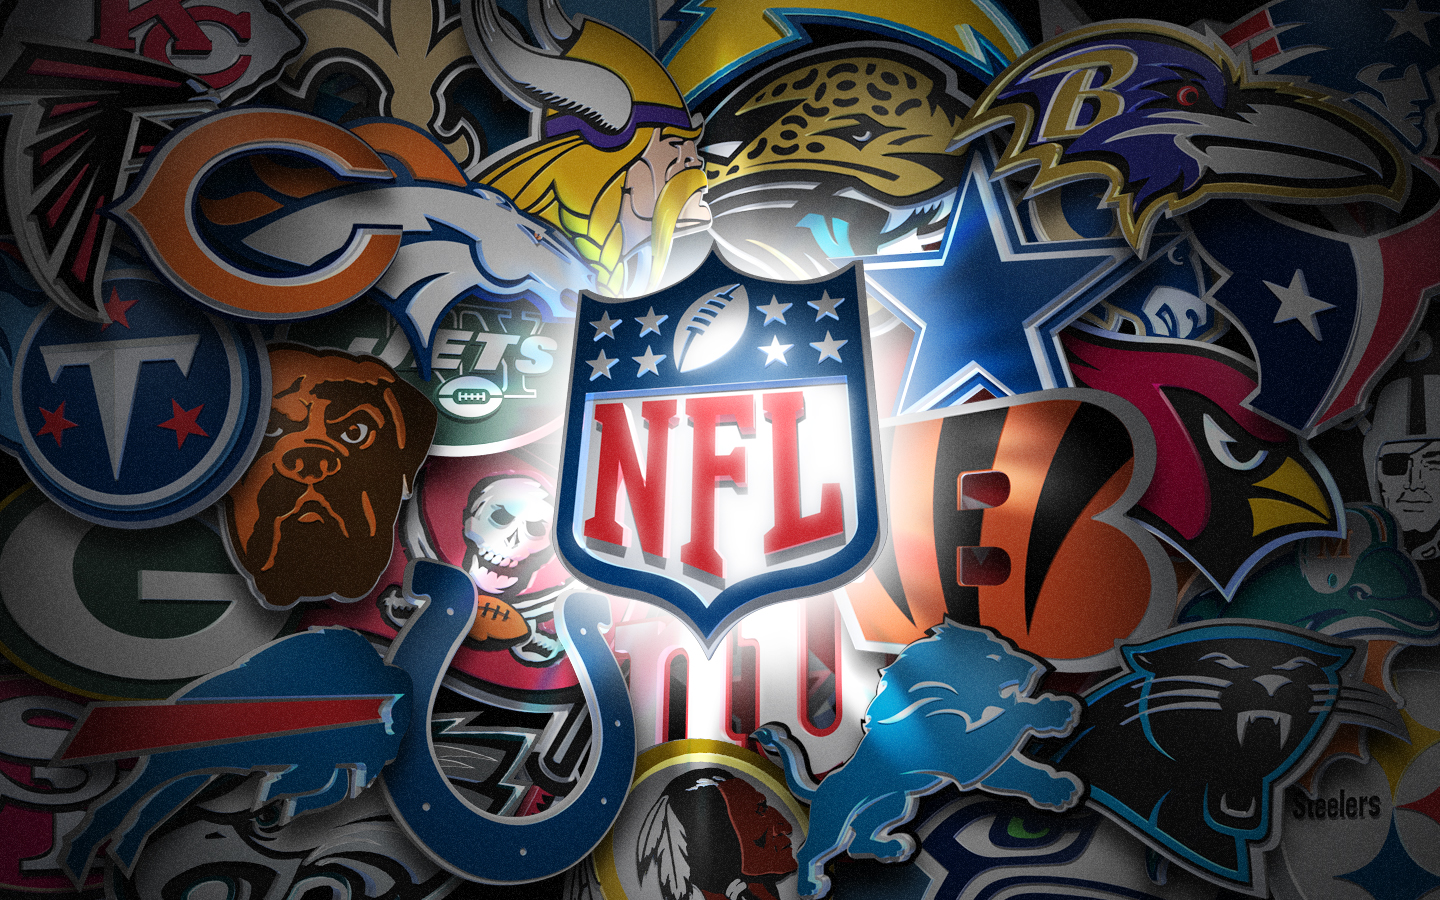 NFL 3D League Logos 1440x900